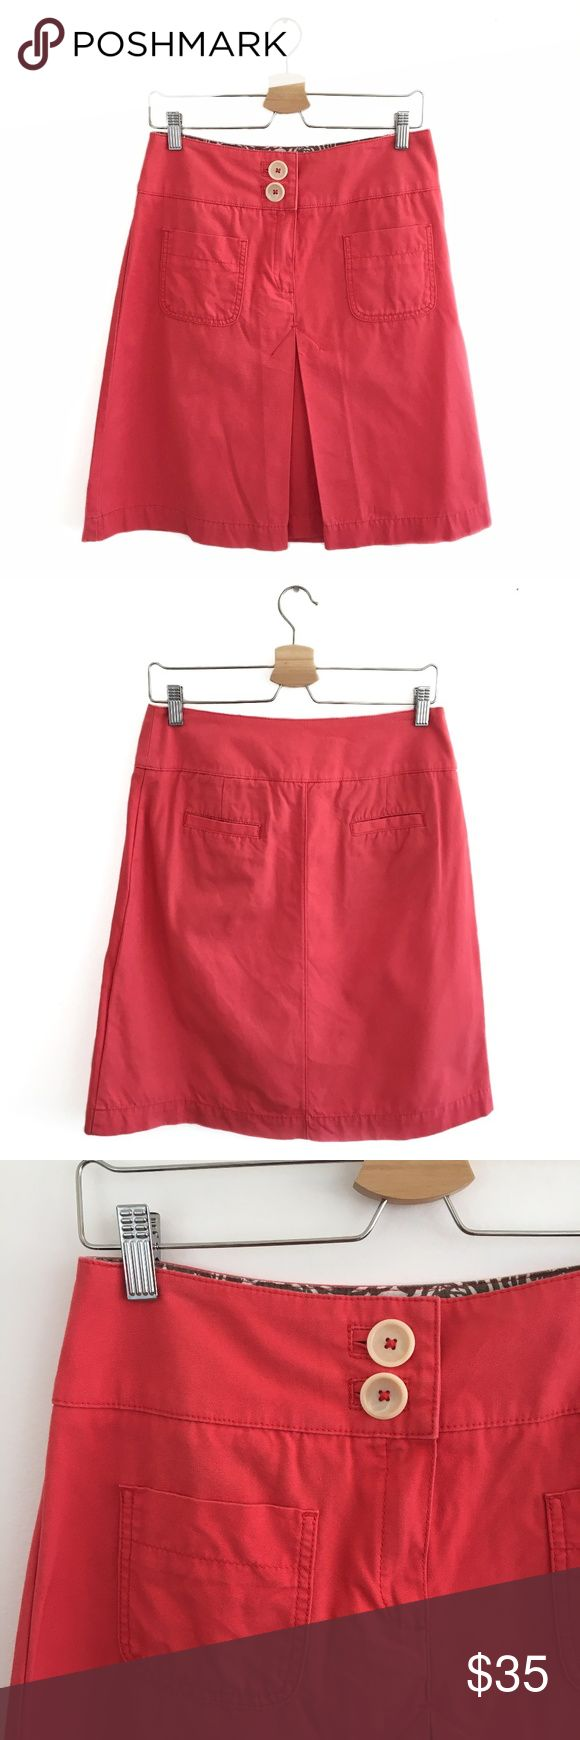 """Boden Inverted Pleat Knee Length Skirt in Coral 12 Boden Inverted Pleat Knee Length Skirt in Coral. Size 12. Excellent Used Condition. No visible flaws. SUPER cute skirt for spring!! Pleated Front. Zipper and 2 adorable button closures. 100% Cotton. Machine Wash. Lay flat to dry. Waist: 14.5"""". Length: 21.5"""" Boden Skirts Midi"""